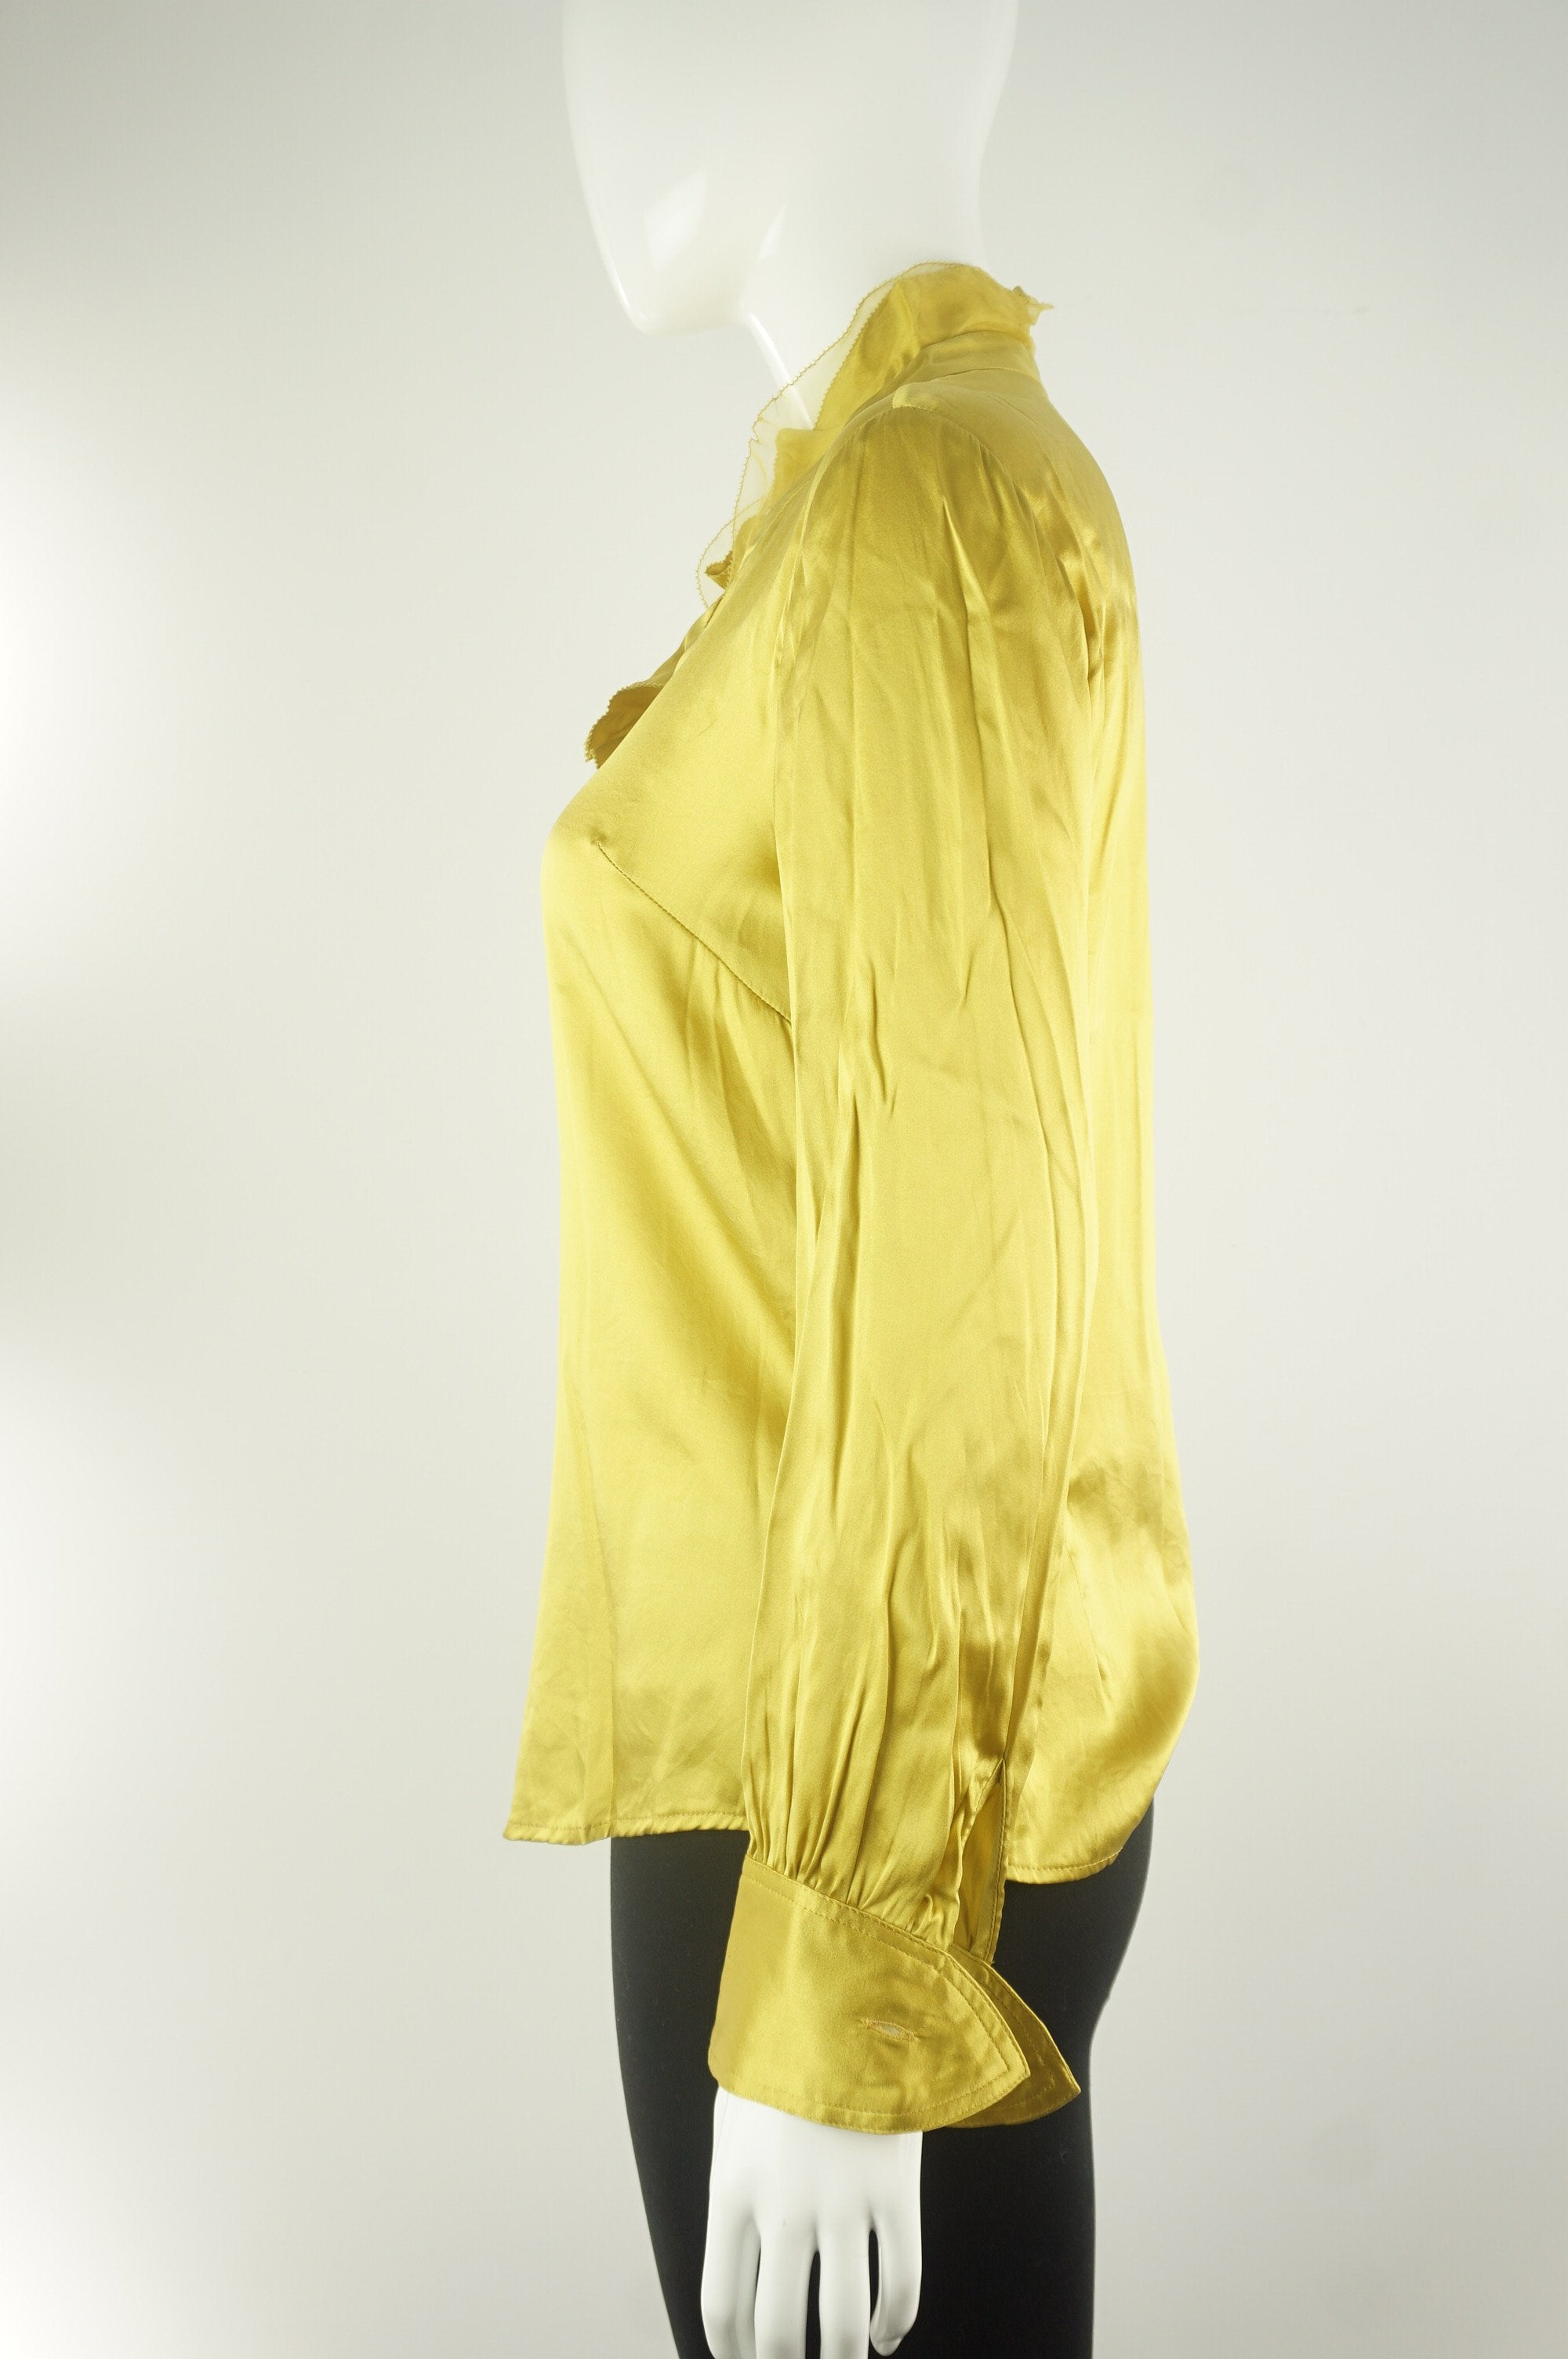 Elli Share Pure Silk Dress Shirt, Super light silk shirt with added spandex for stretchiness and comfort. Stylish on its own or with a kickass blazer.  Labeled Size M but fits Small., Yellow, 97% Silk, 3% Spandex, women's Tops, women's Yellow Tops, Elli Share women's Tops, silk work collar shirt with ruffle neck, silk professional collar shirt